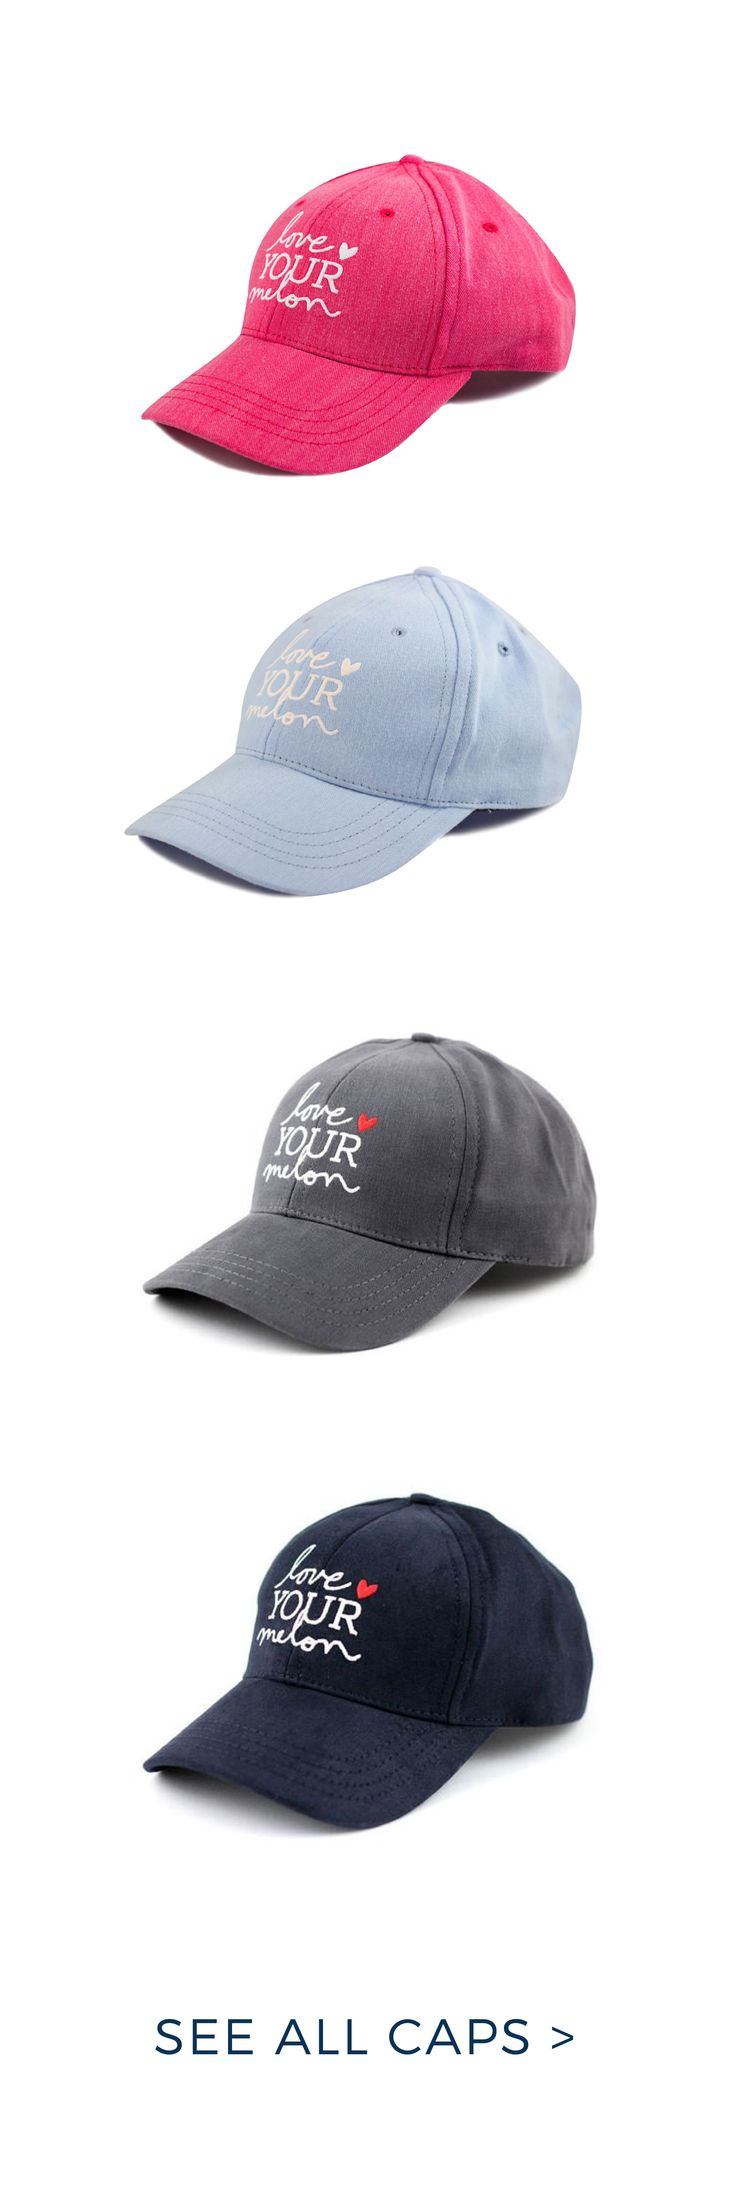 Shop Love Your Melon Caps that give back!